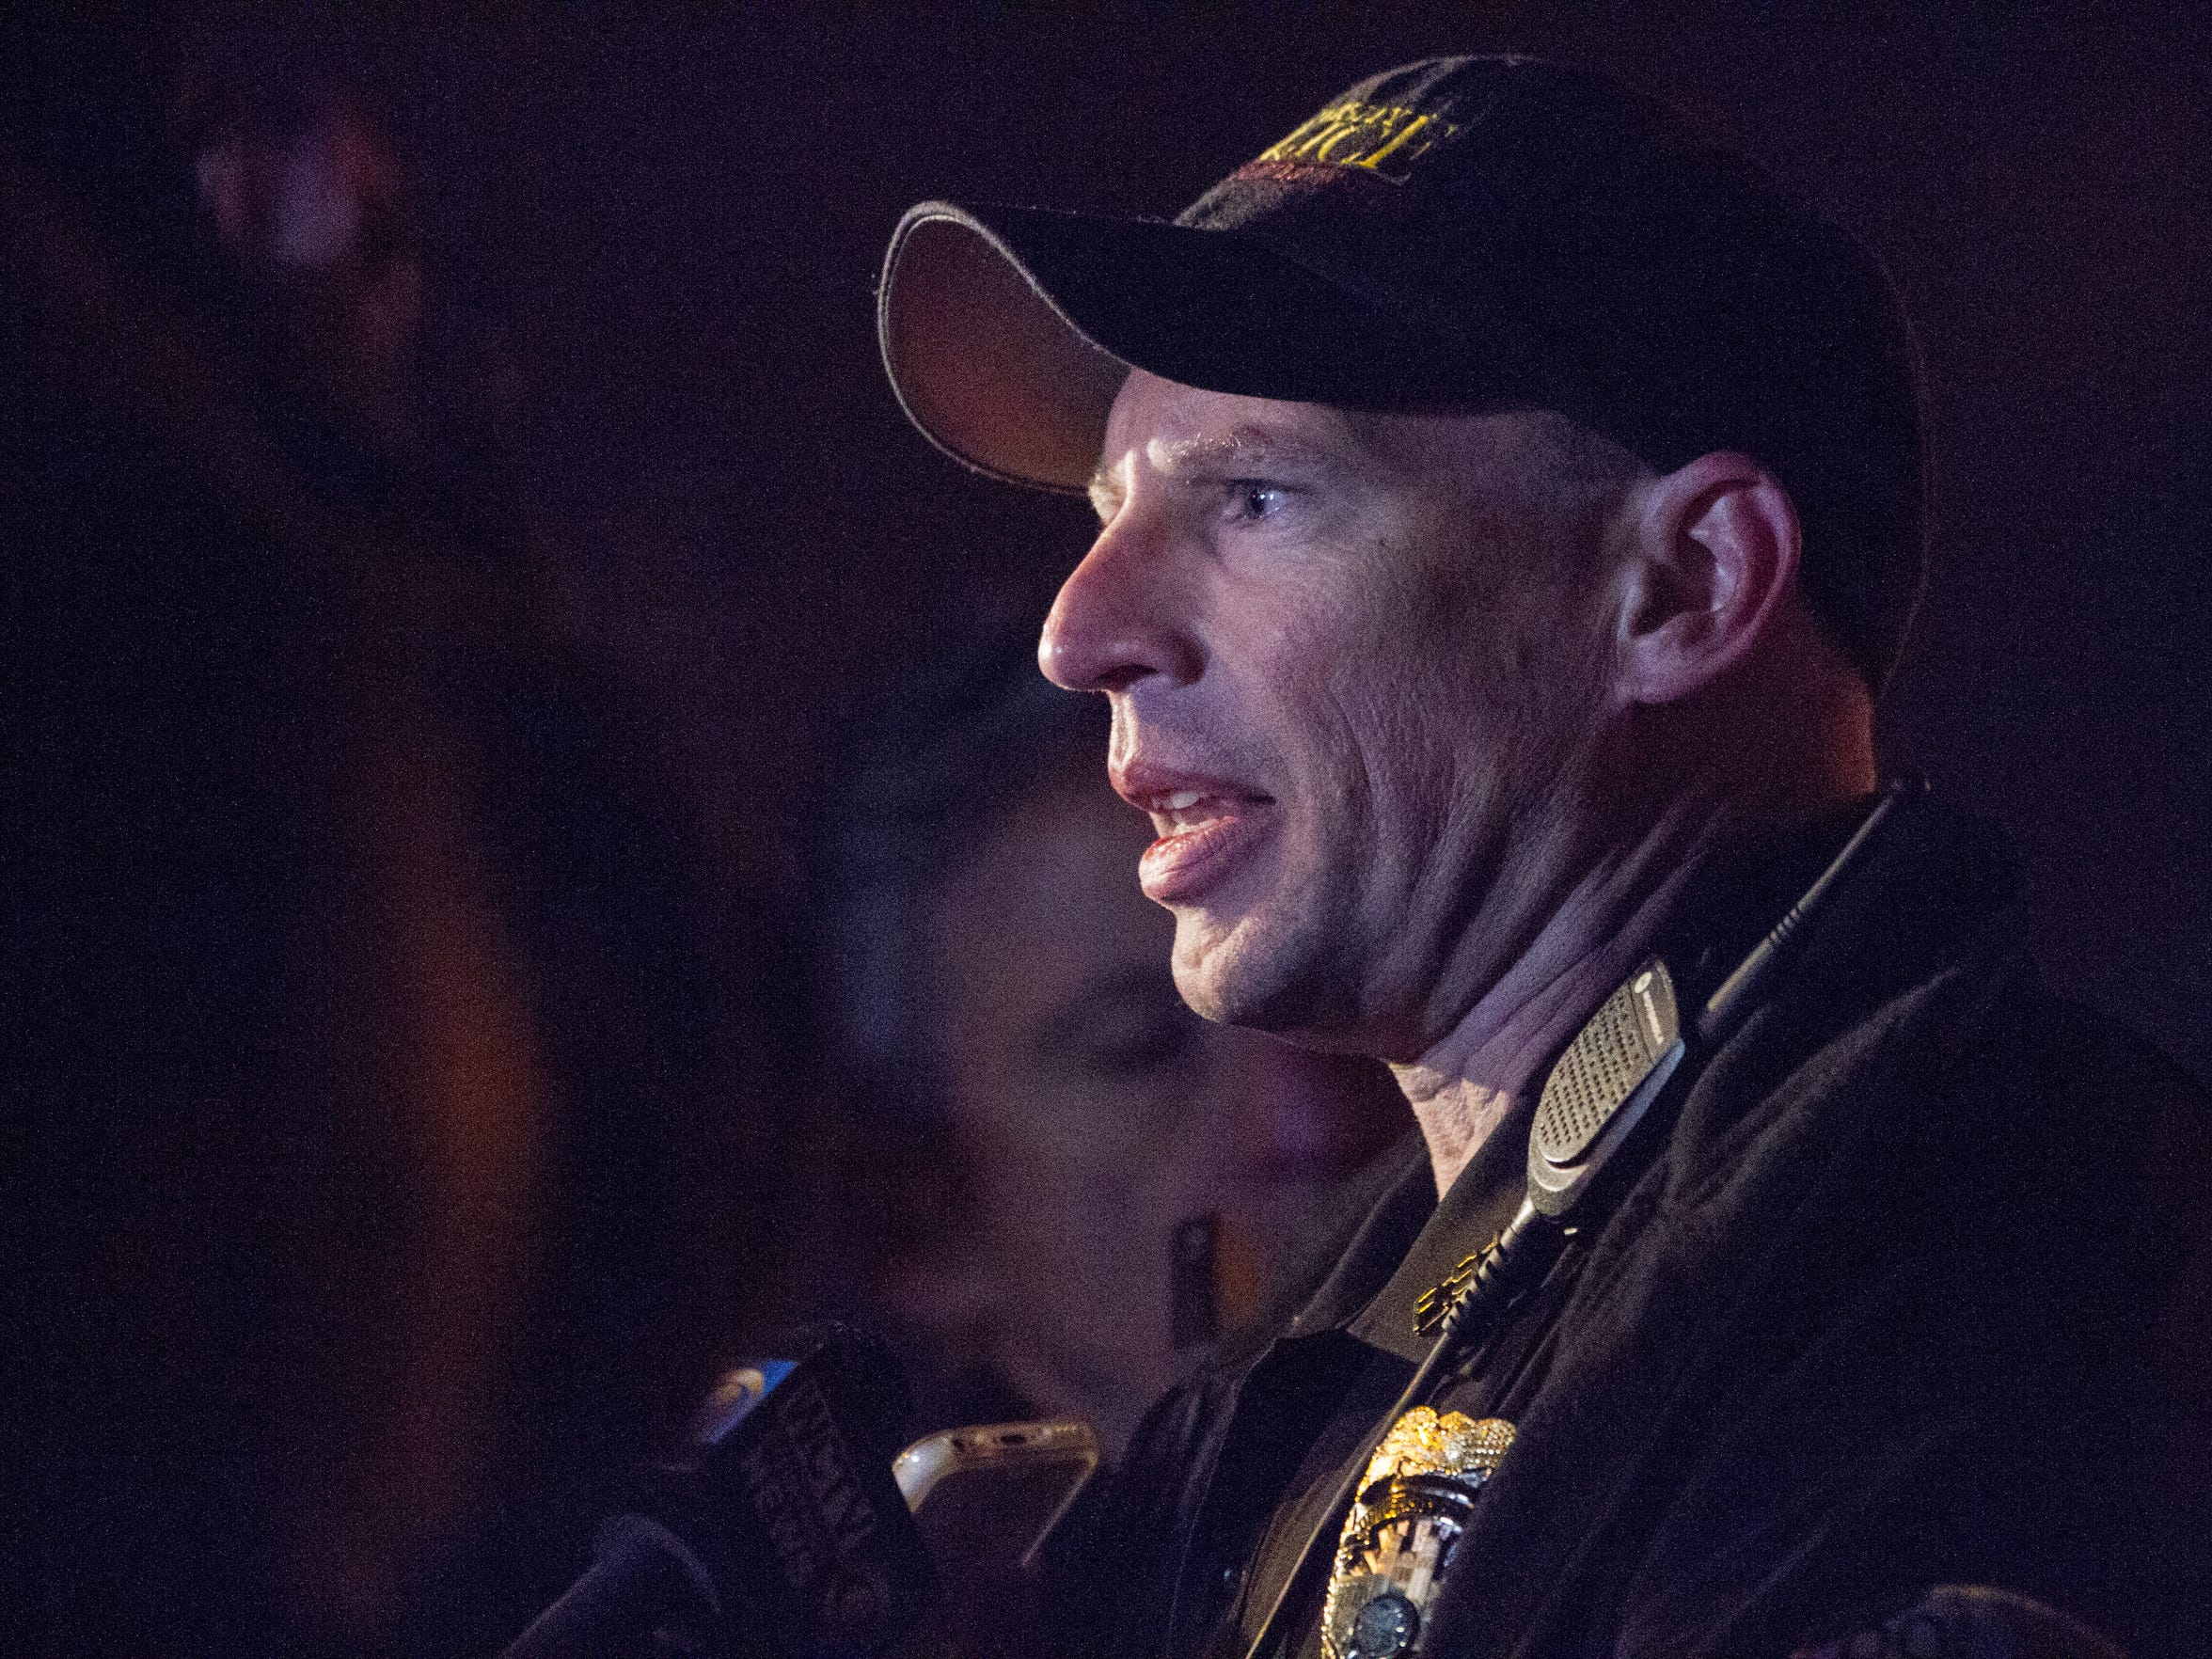 FSU Police Deputy Chief James Russell speaks during a press conference near Strozier library on the main campus of Florida State University on Thursday, Nov. 20, 2014 in Tallahassee, Fla.